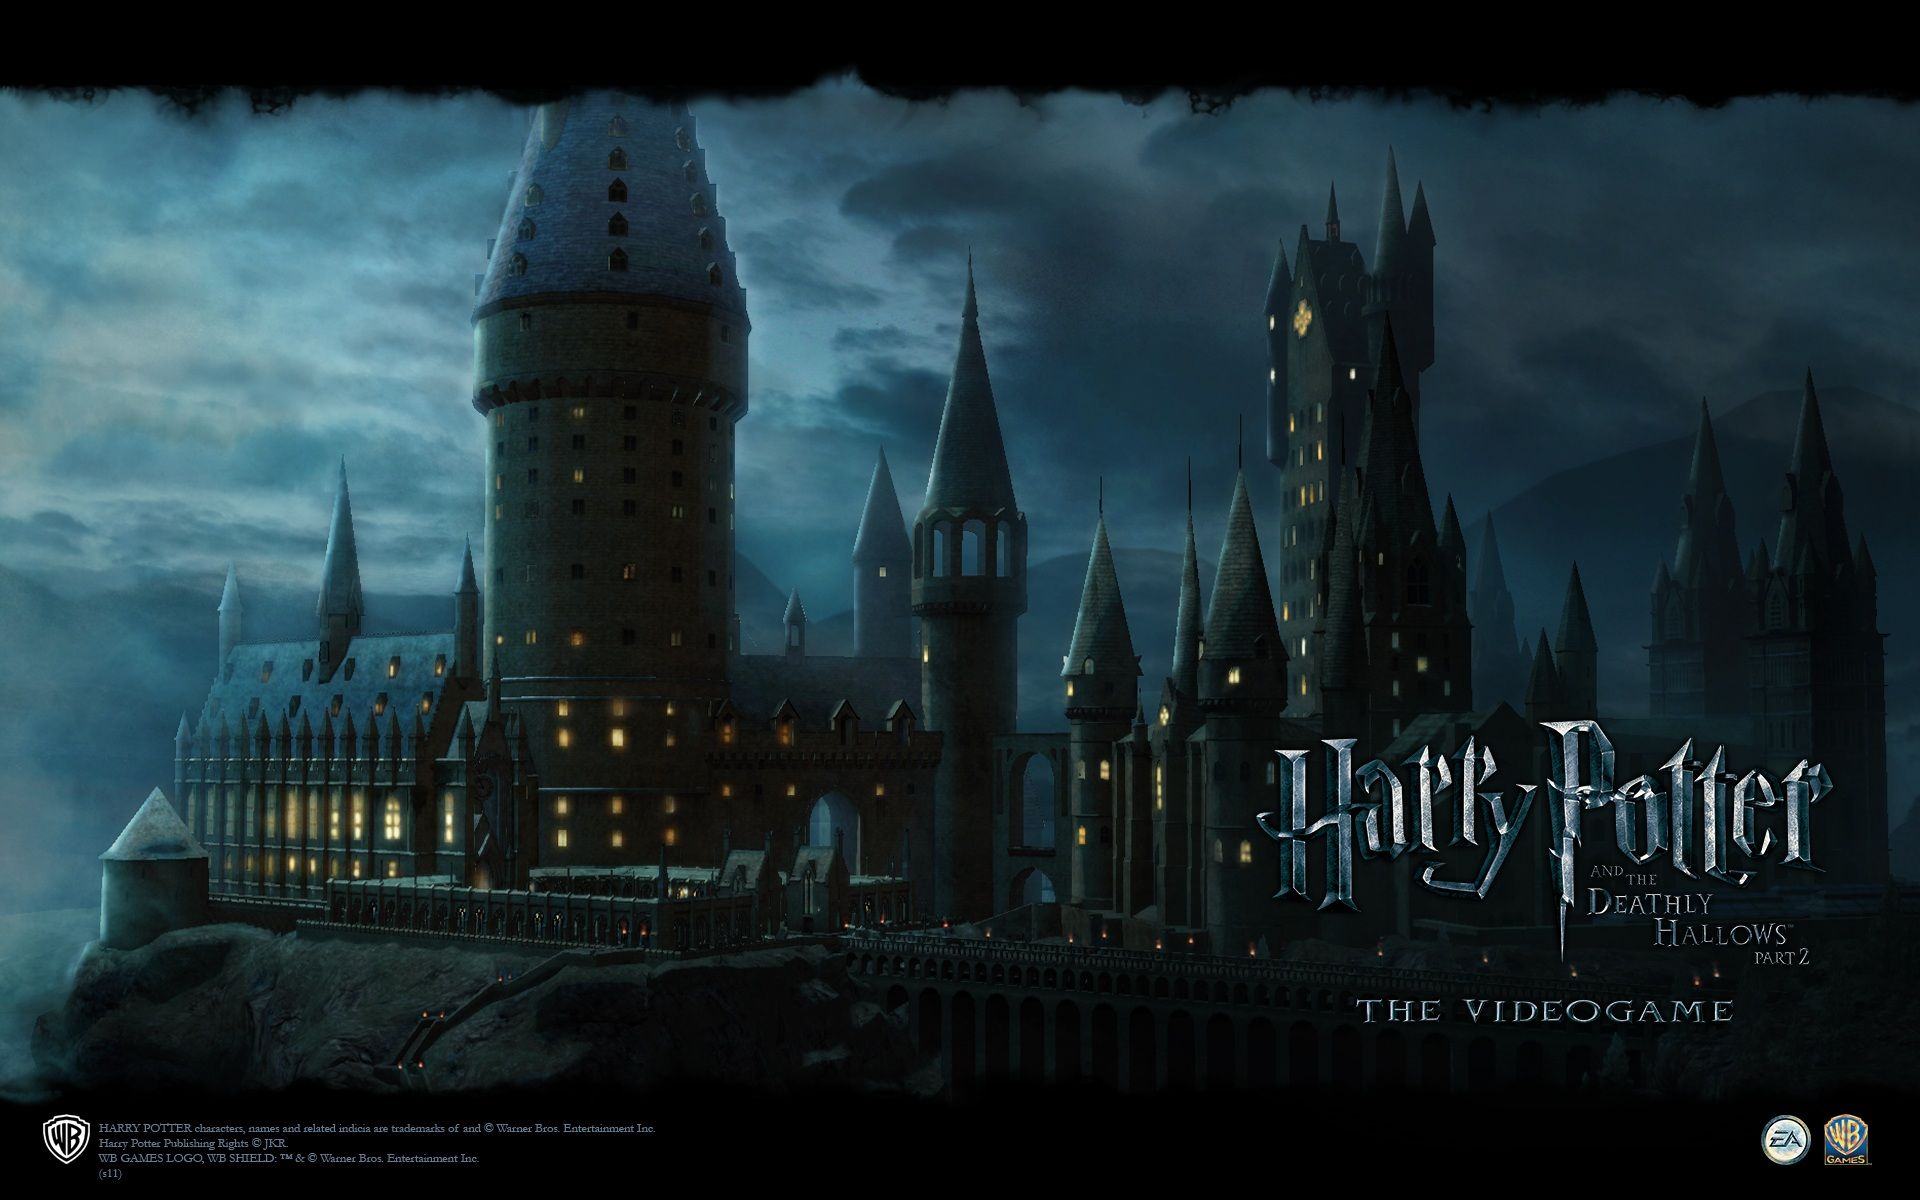 Harry Potter Wallpapers Harry Potter Wallpaper Slytherin Wallpaper Hogwarts Castle